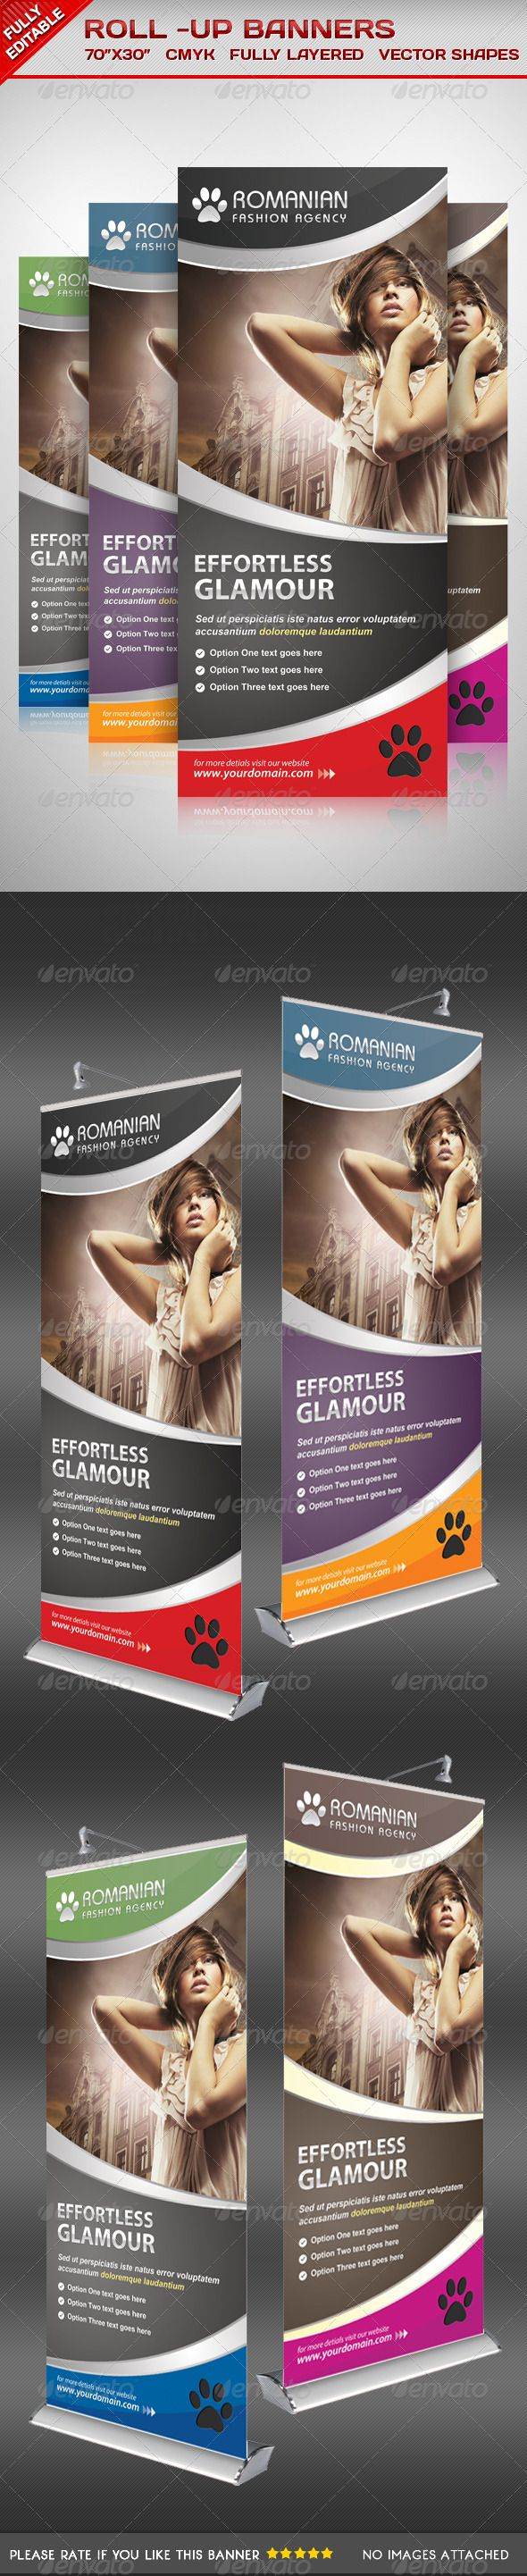 Multiporpose Glamorous Roll Up Banners - Signage Print Templates